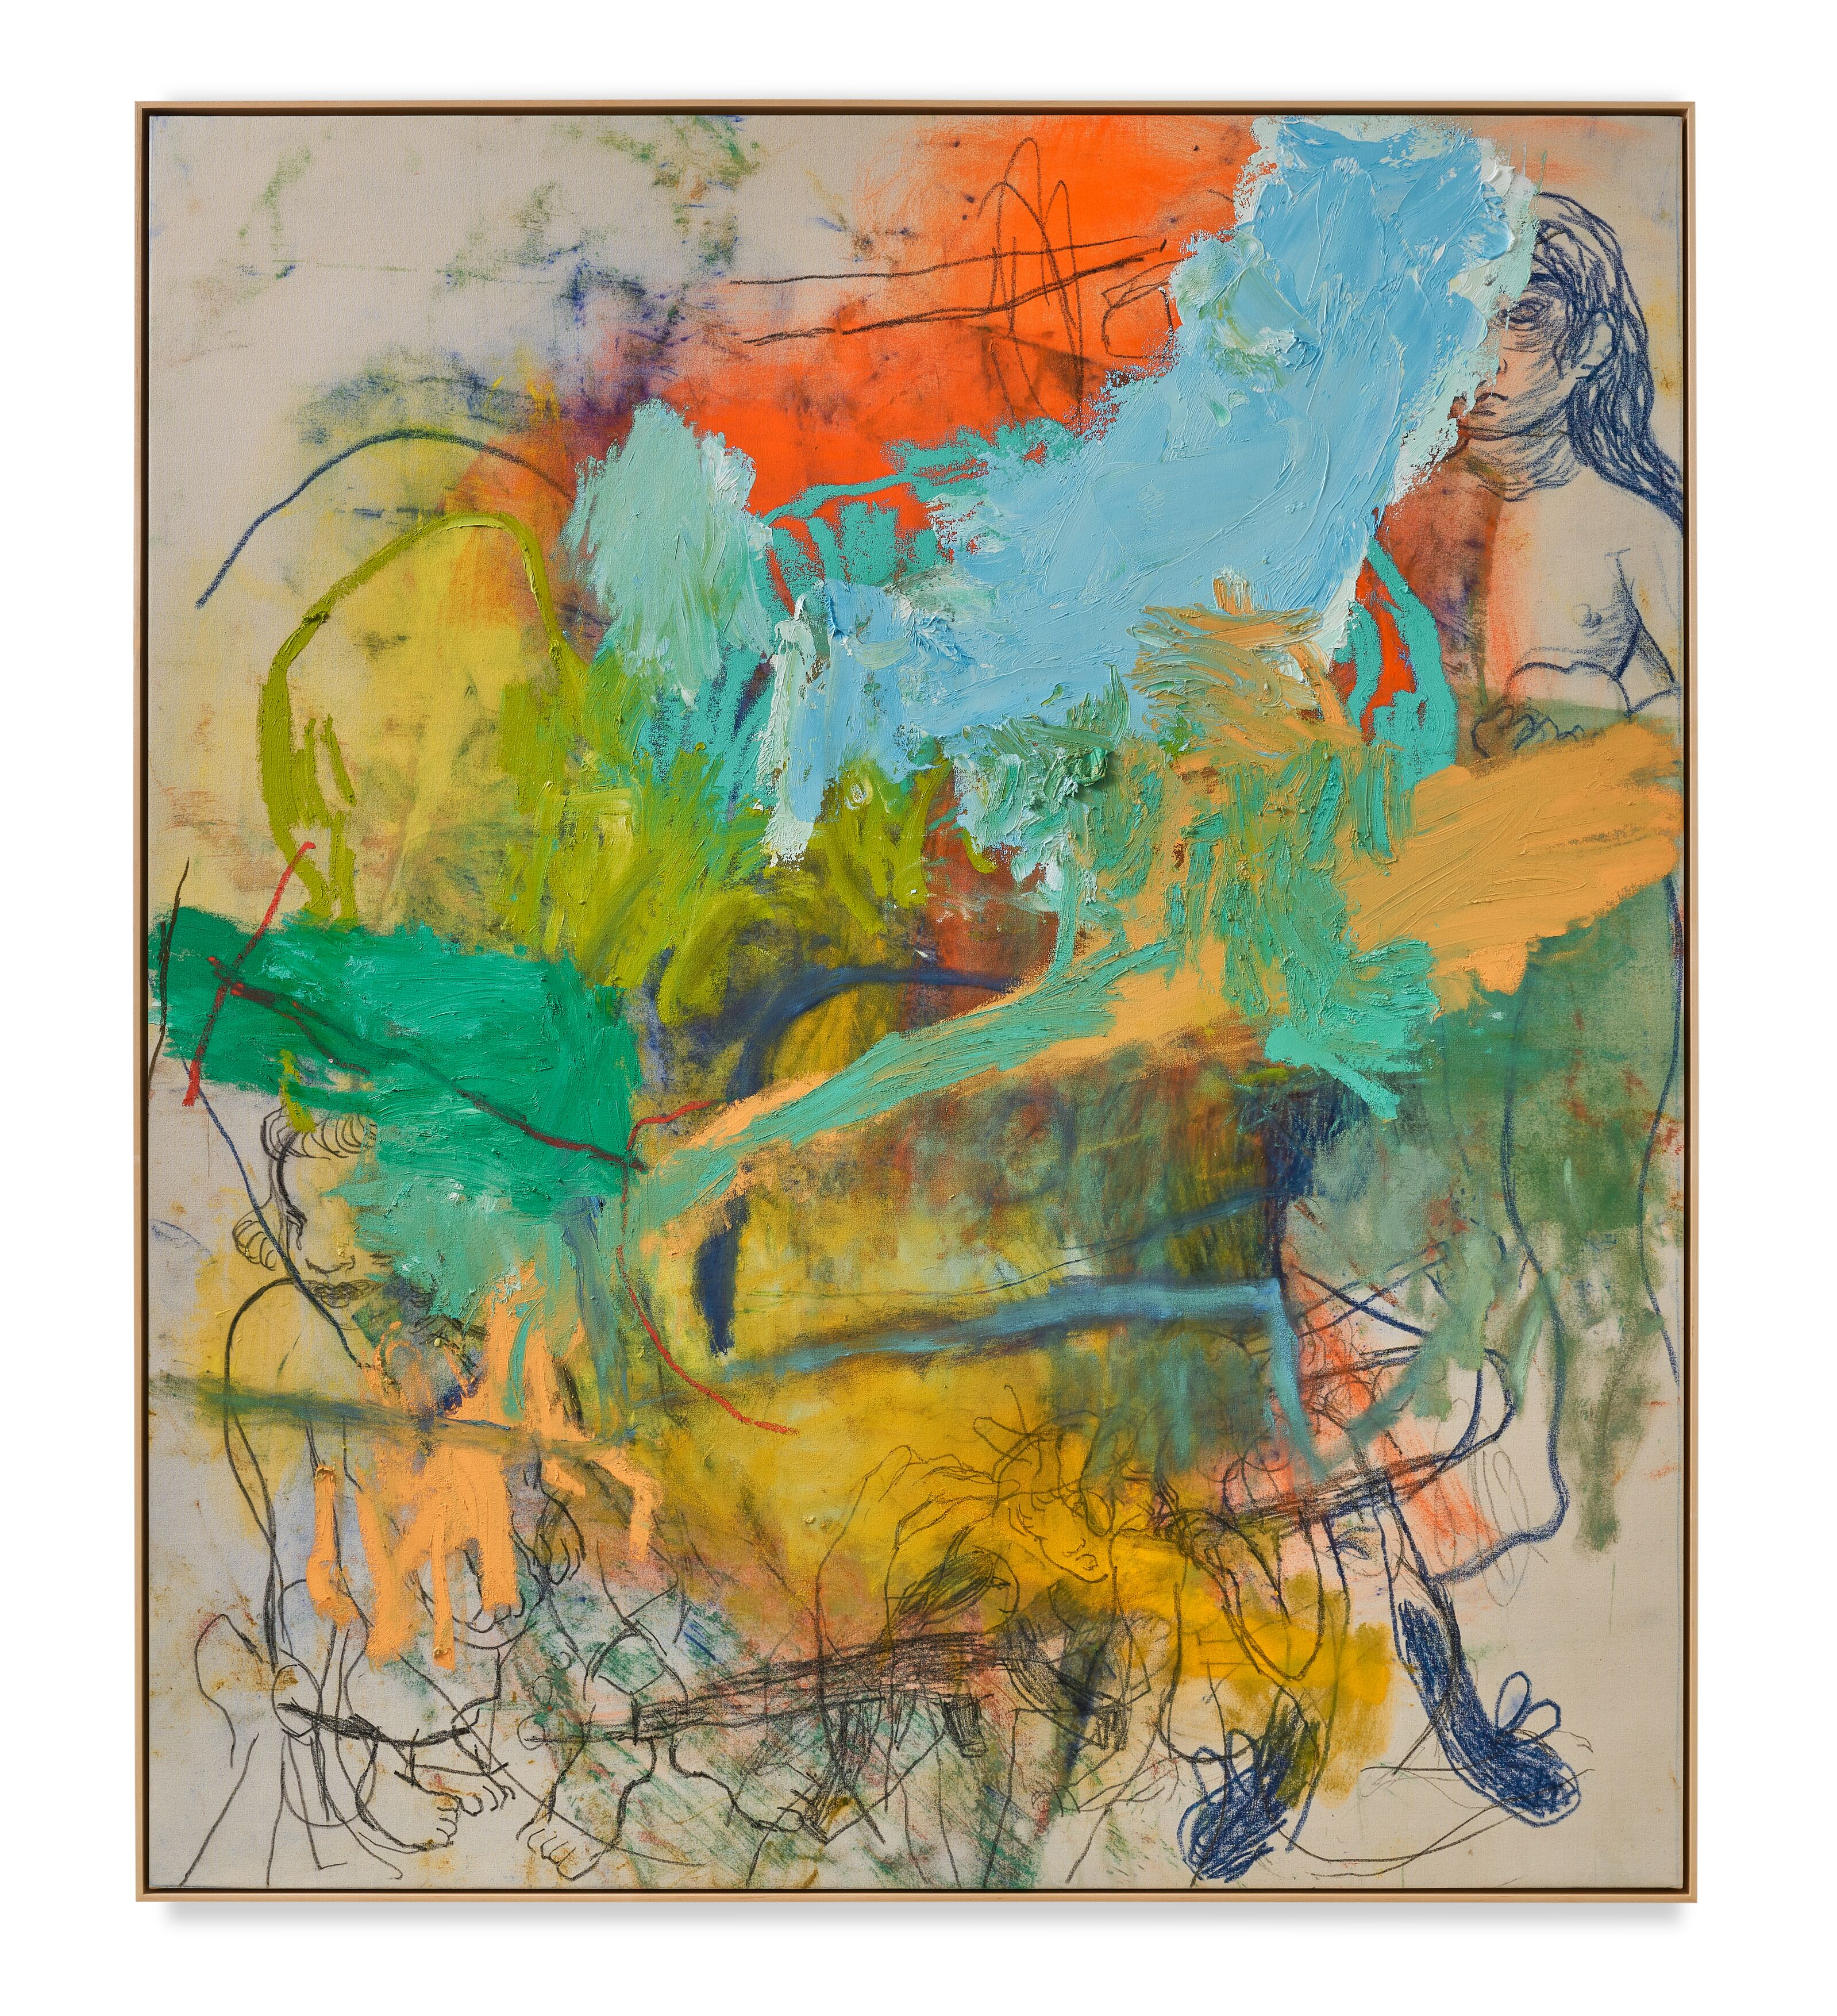 Rita Ackermann / Mama, The Best Is Always Yet to Come / 2020 / Oil, acrylic and china marker on canvas / 190.5 x 165.1 cm / 75 x 65 in / Courtesy the artist and Hauser & Wirth. Photo: Jon Etter